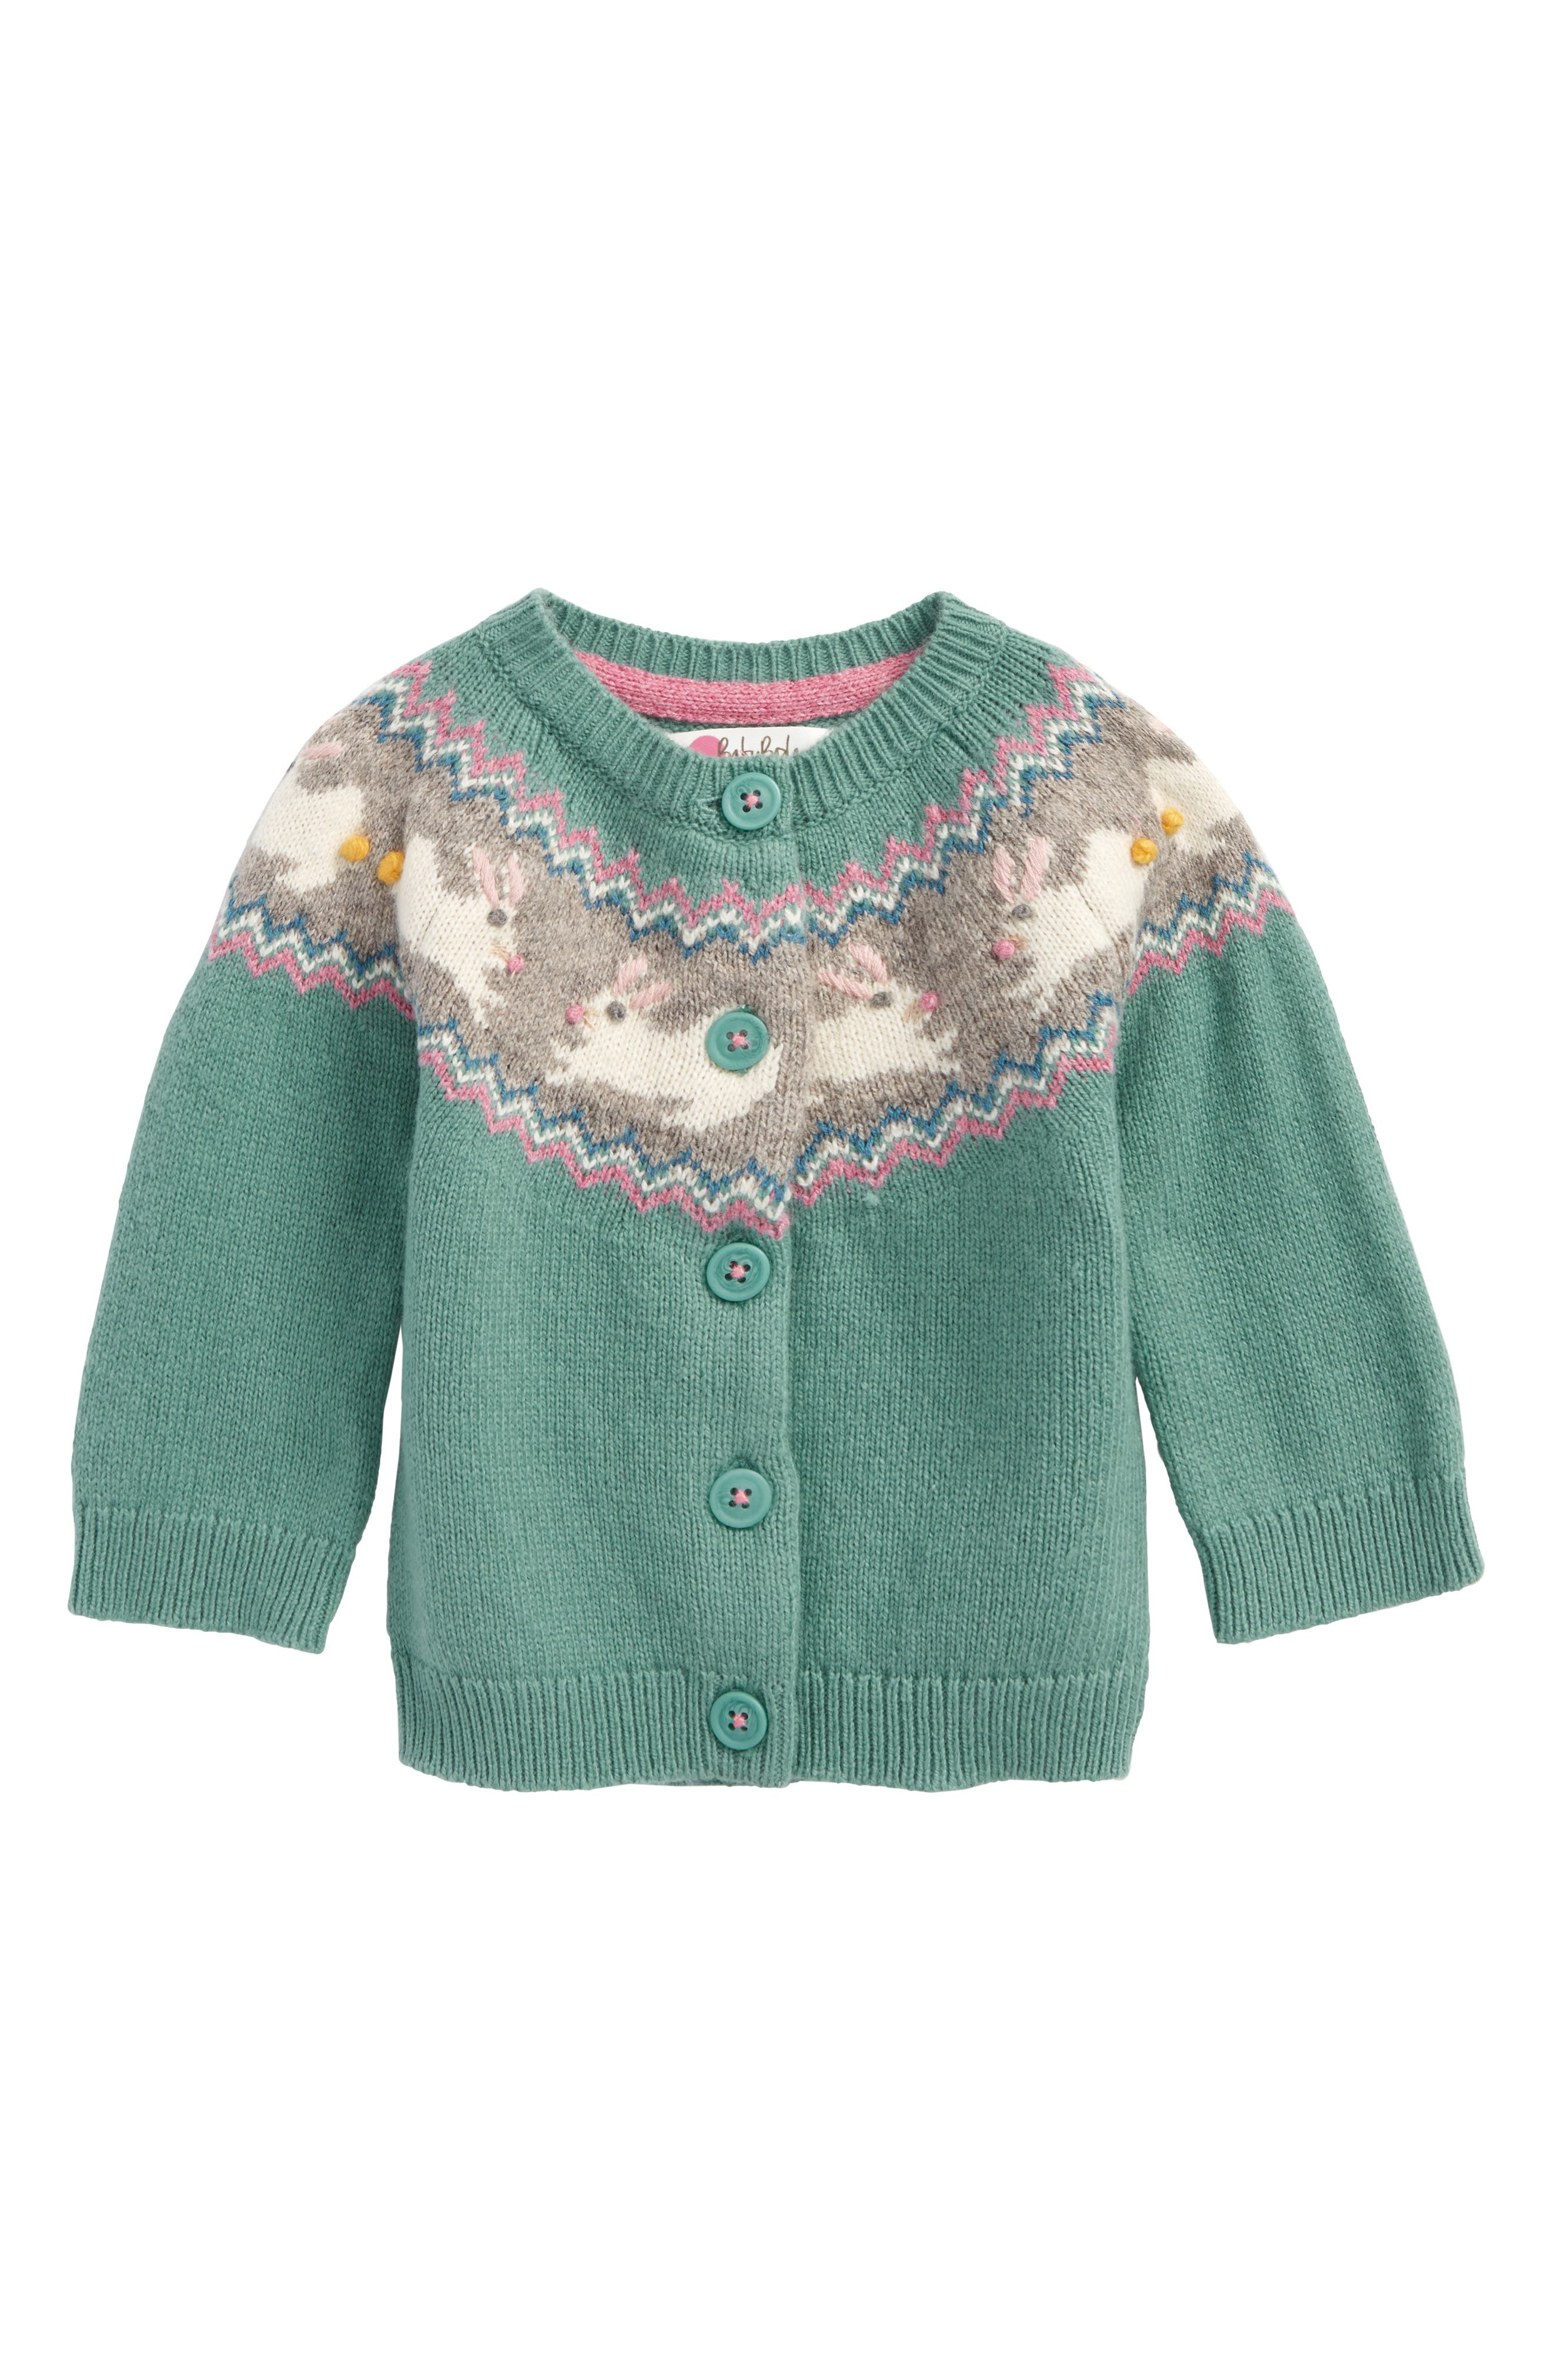 Mini Boden Fair Isle Cardigan (Baby Girls & Toddler Girls) | Nordstrom